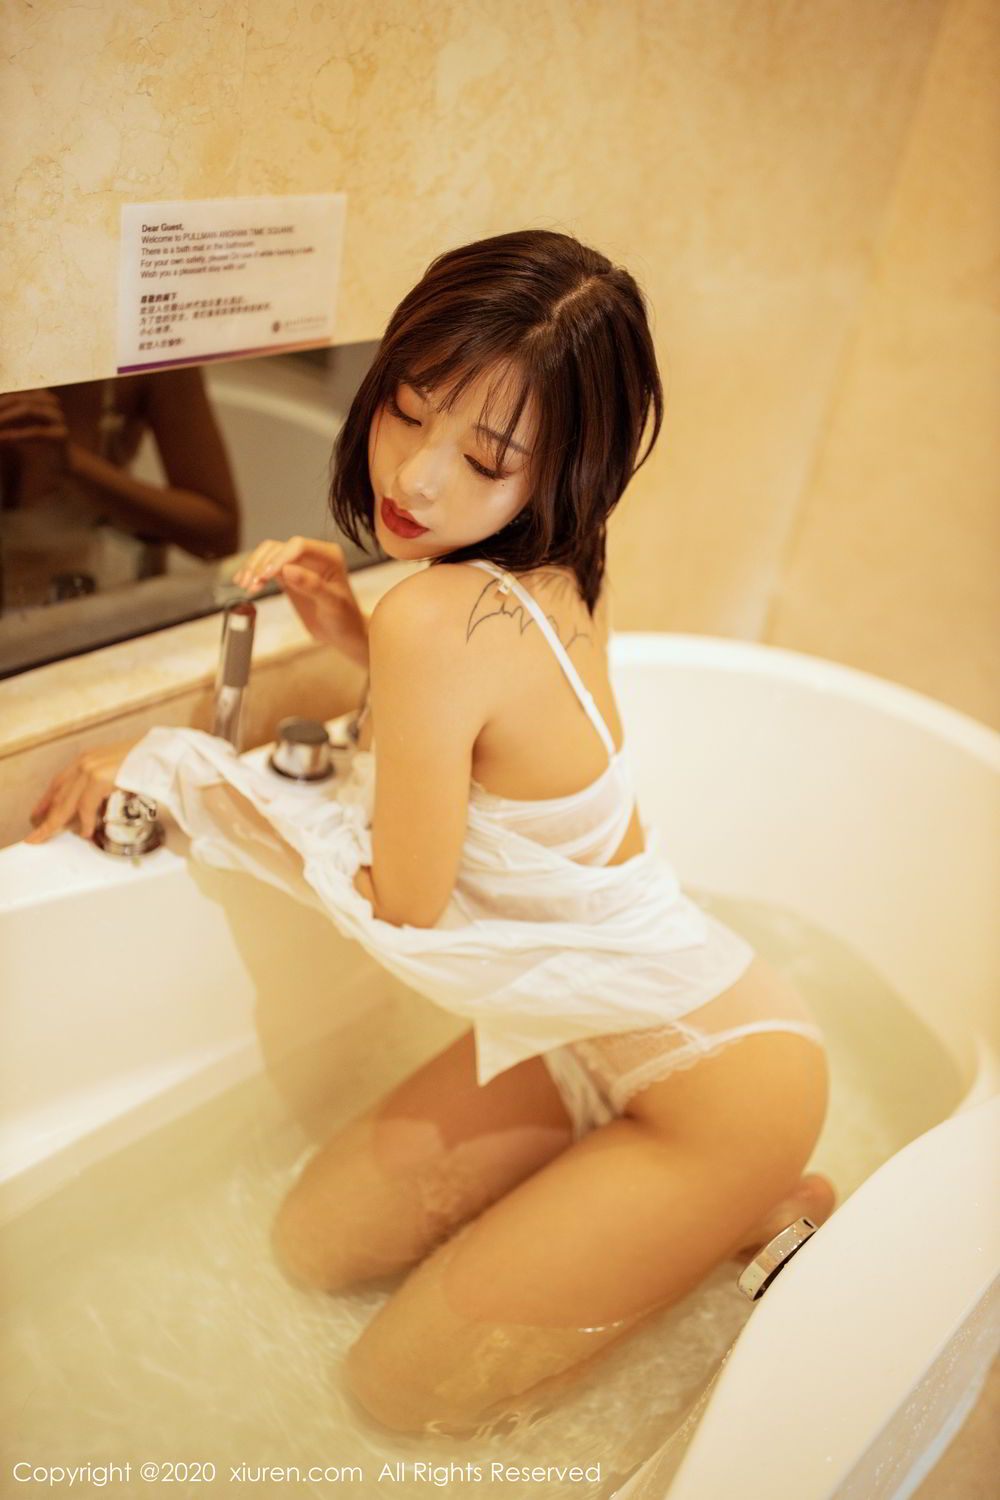 [XiuRen] Vol.2158 Chen Xiao Miao 45P, Bathroom, Chen Xiao Miao, Tall, Wet, Xiuren